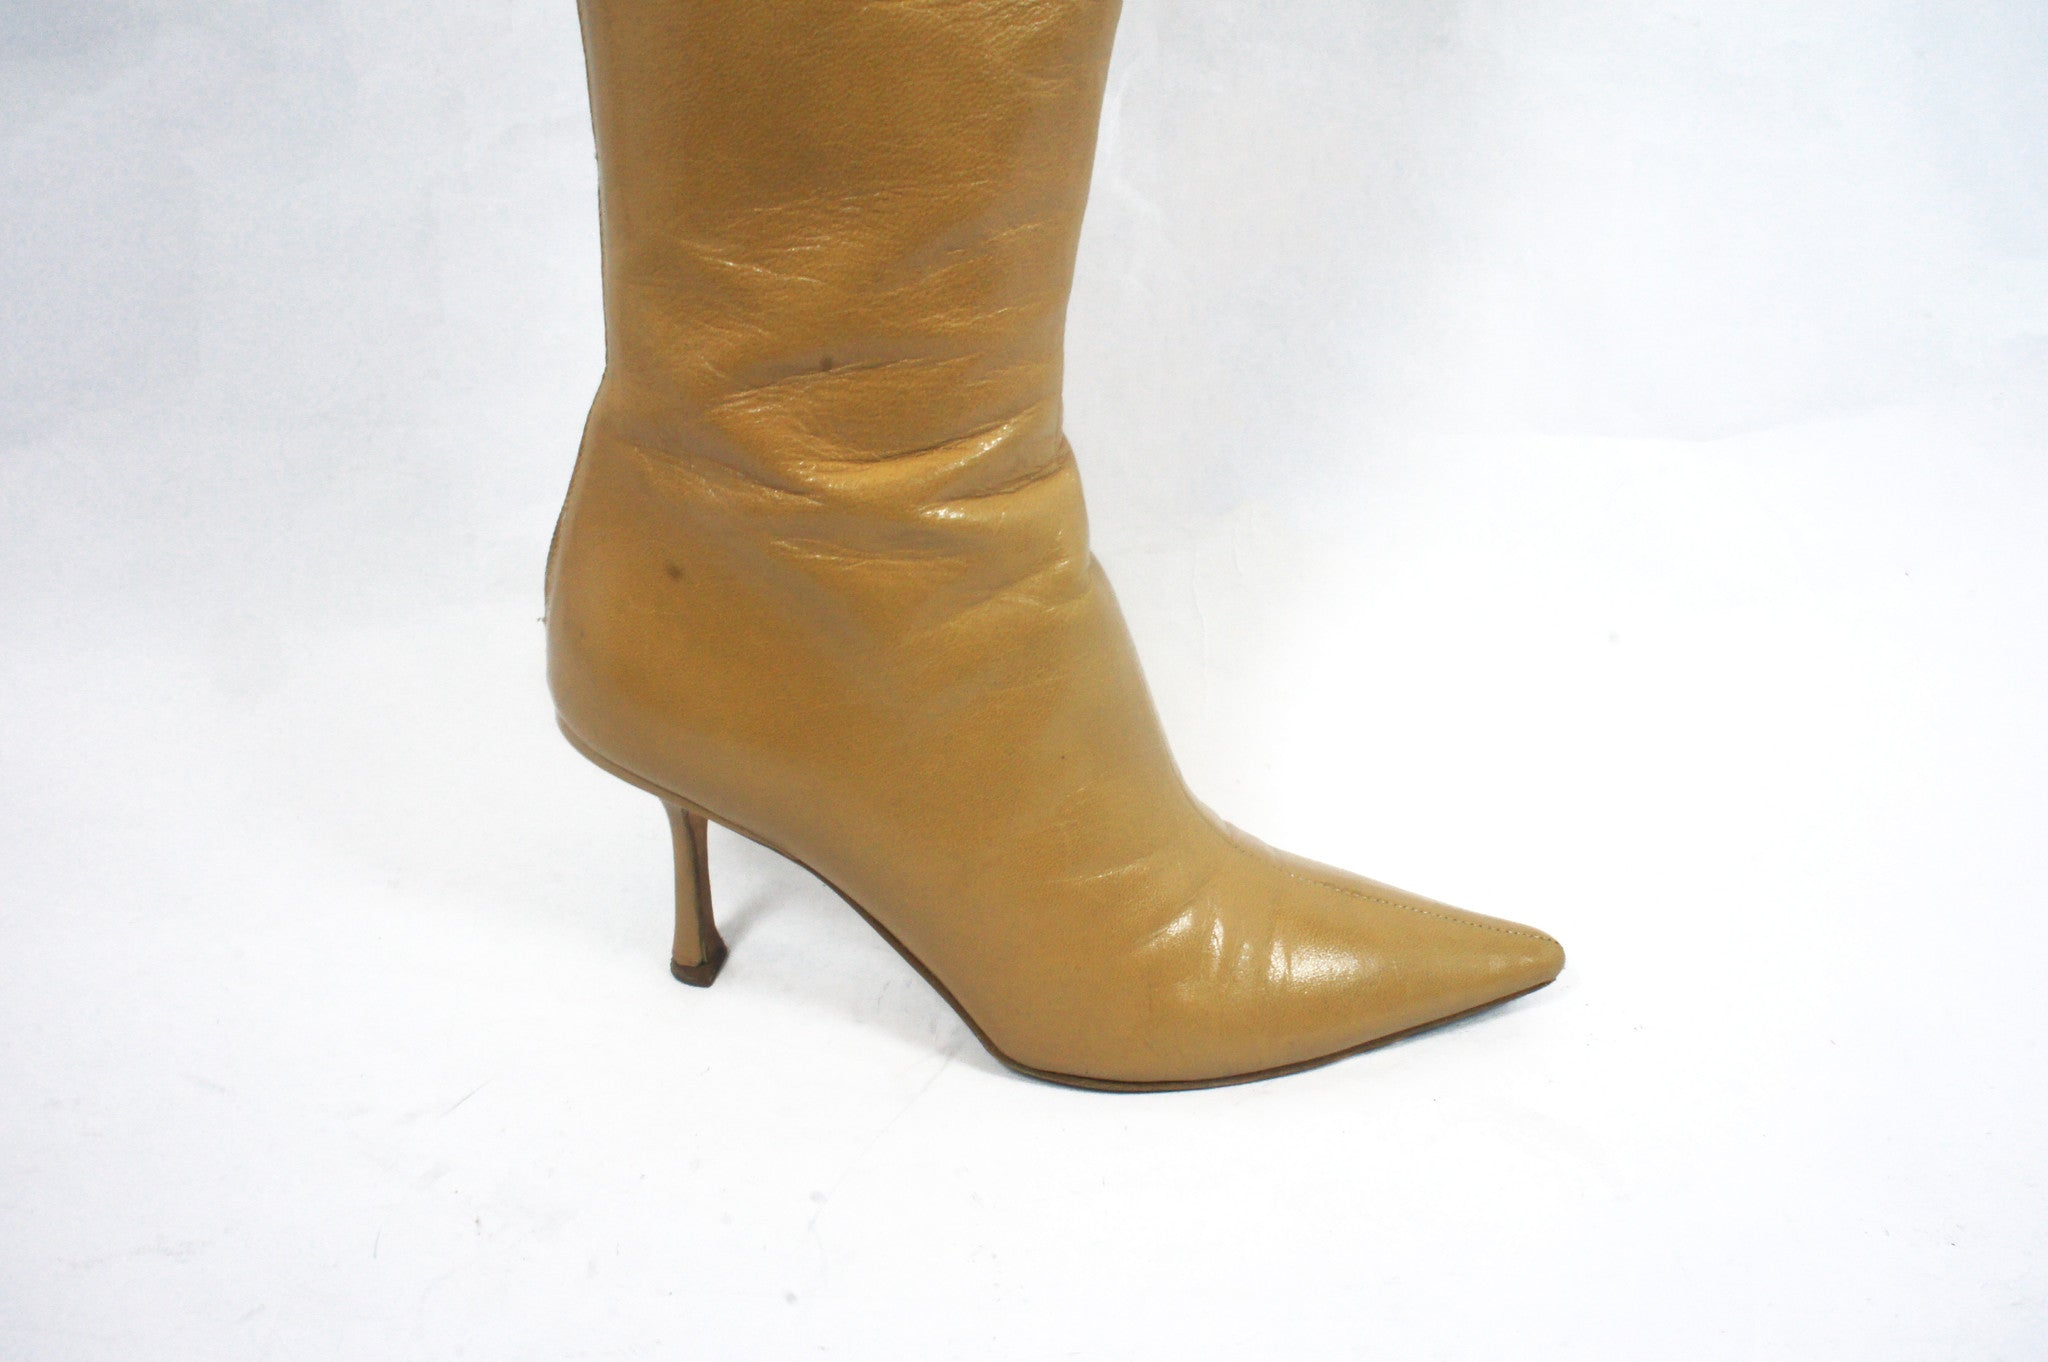 Jimmy Choo Beige Knee High Boots (Size 36.5) - Encore Consignment - 9